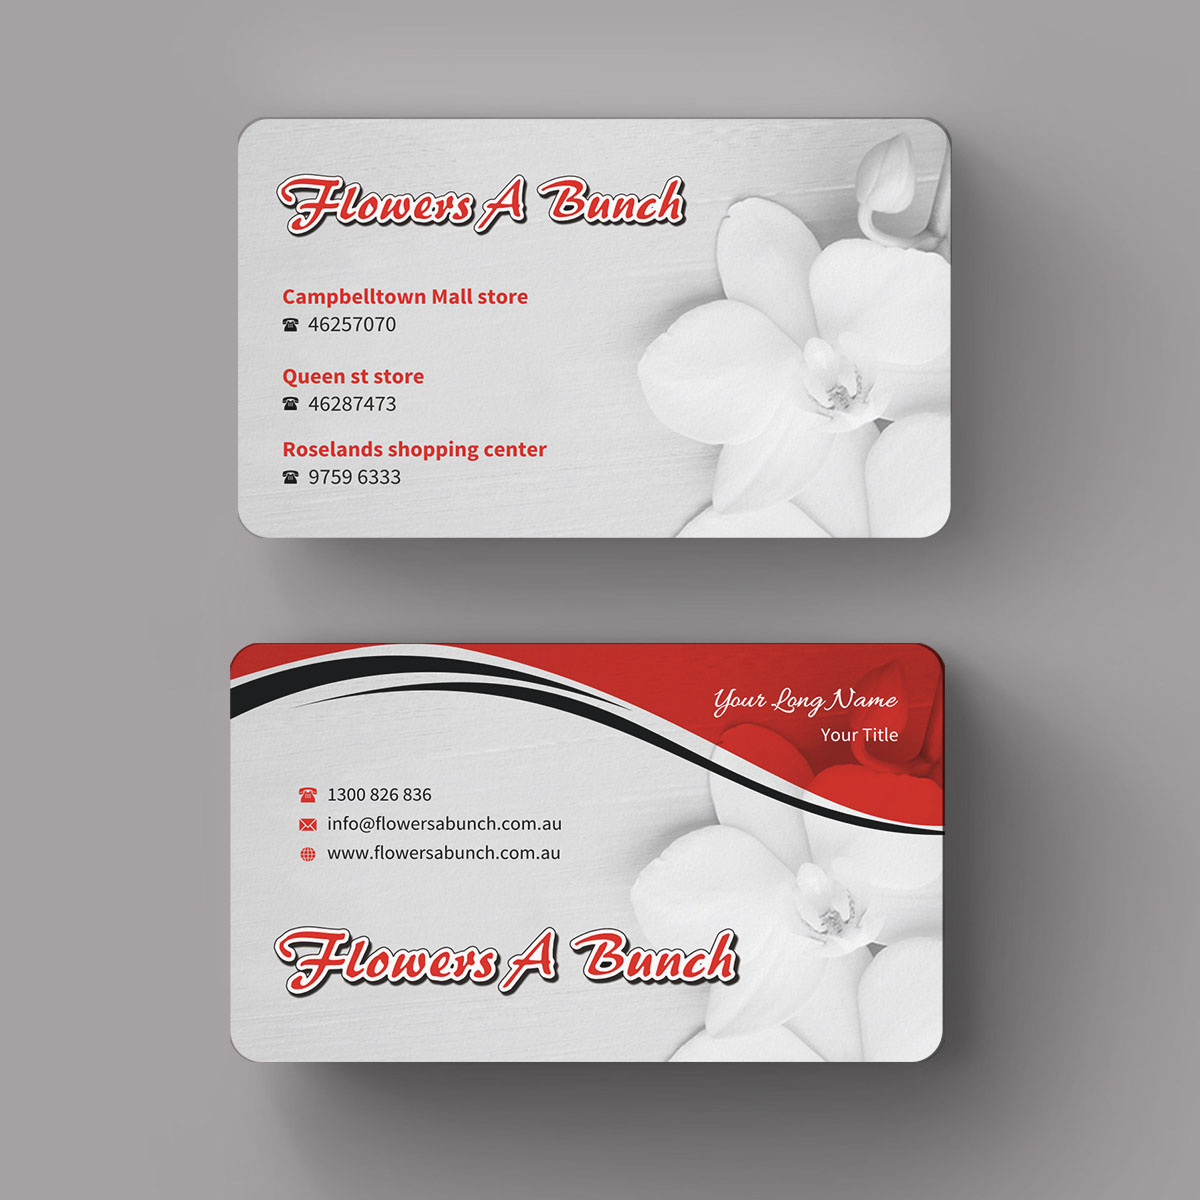 Modern professional business card design for flowers a bunch by business card design by indianashok for im florist that a new business card design design colourmoves